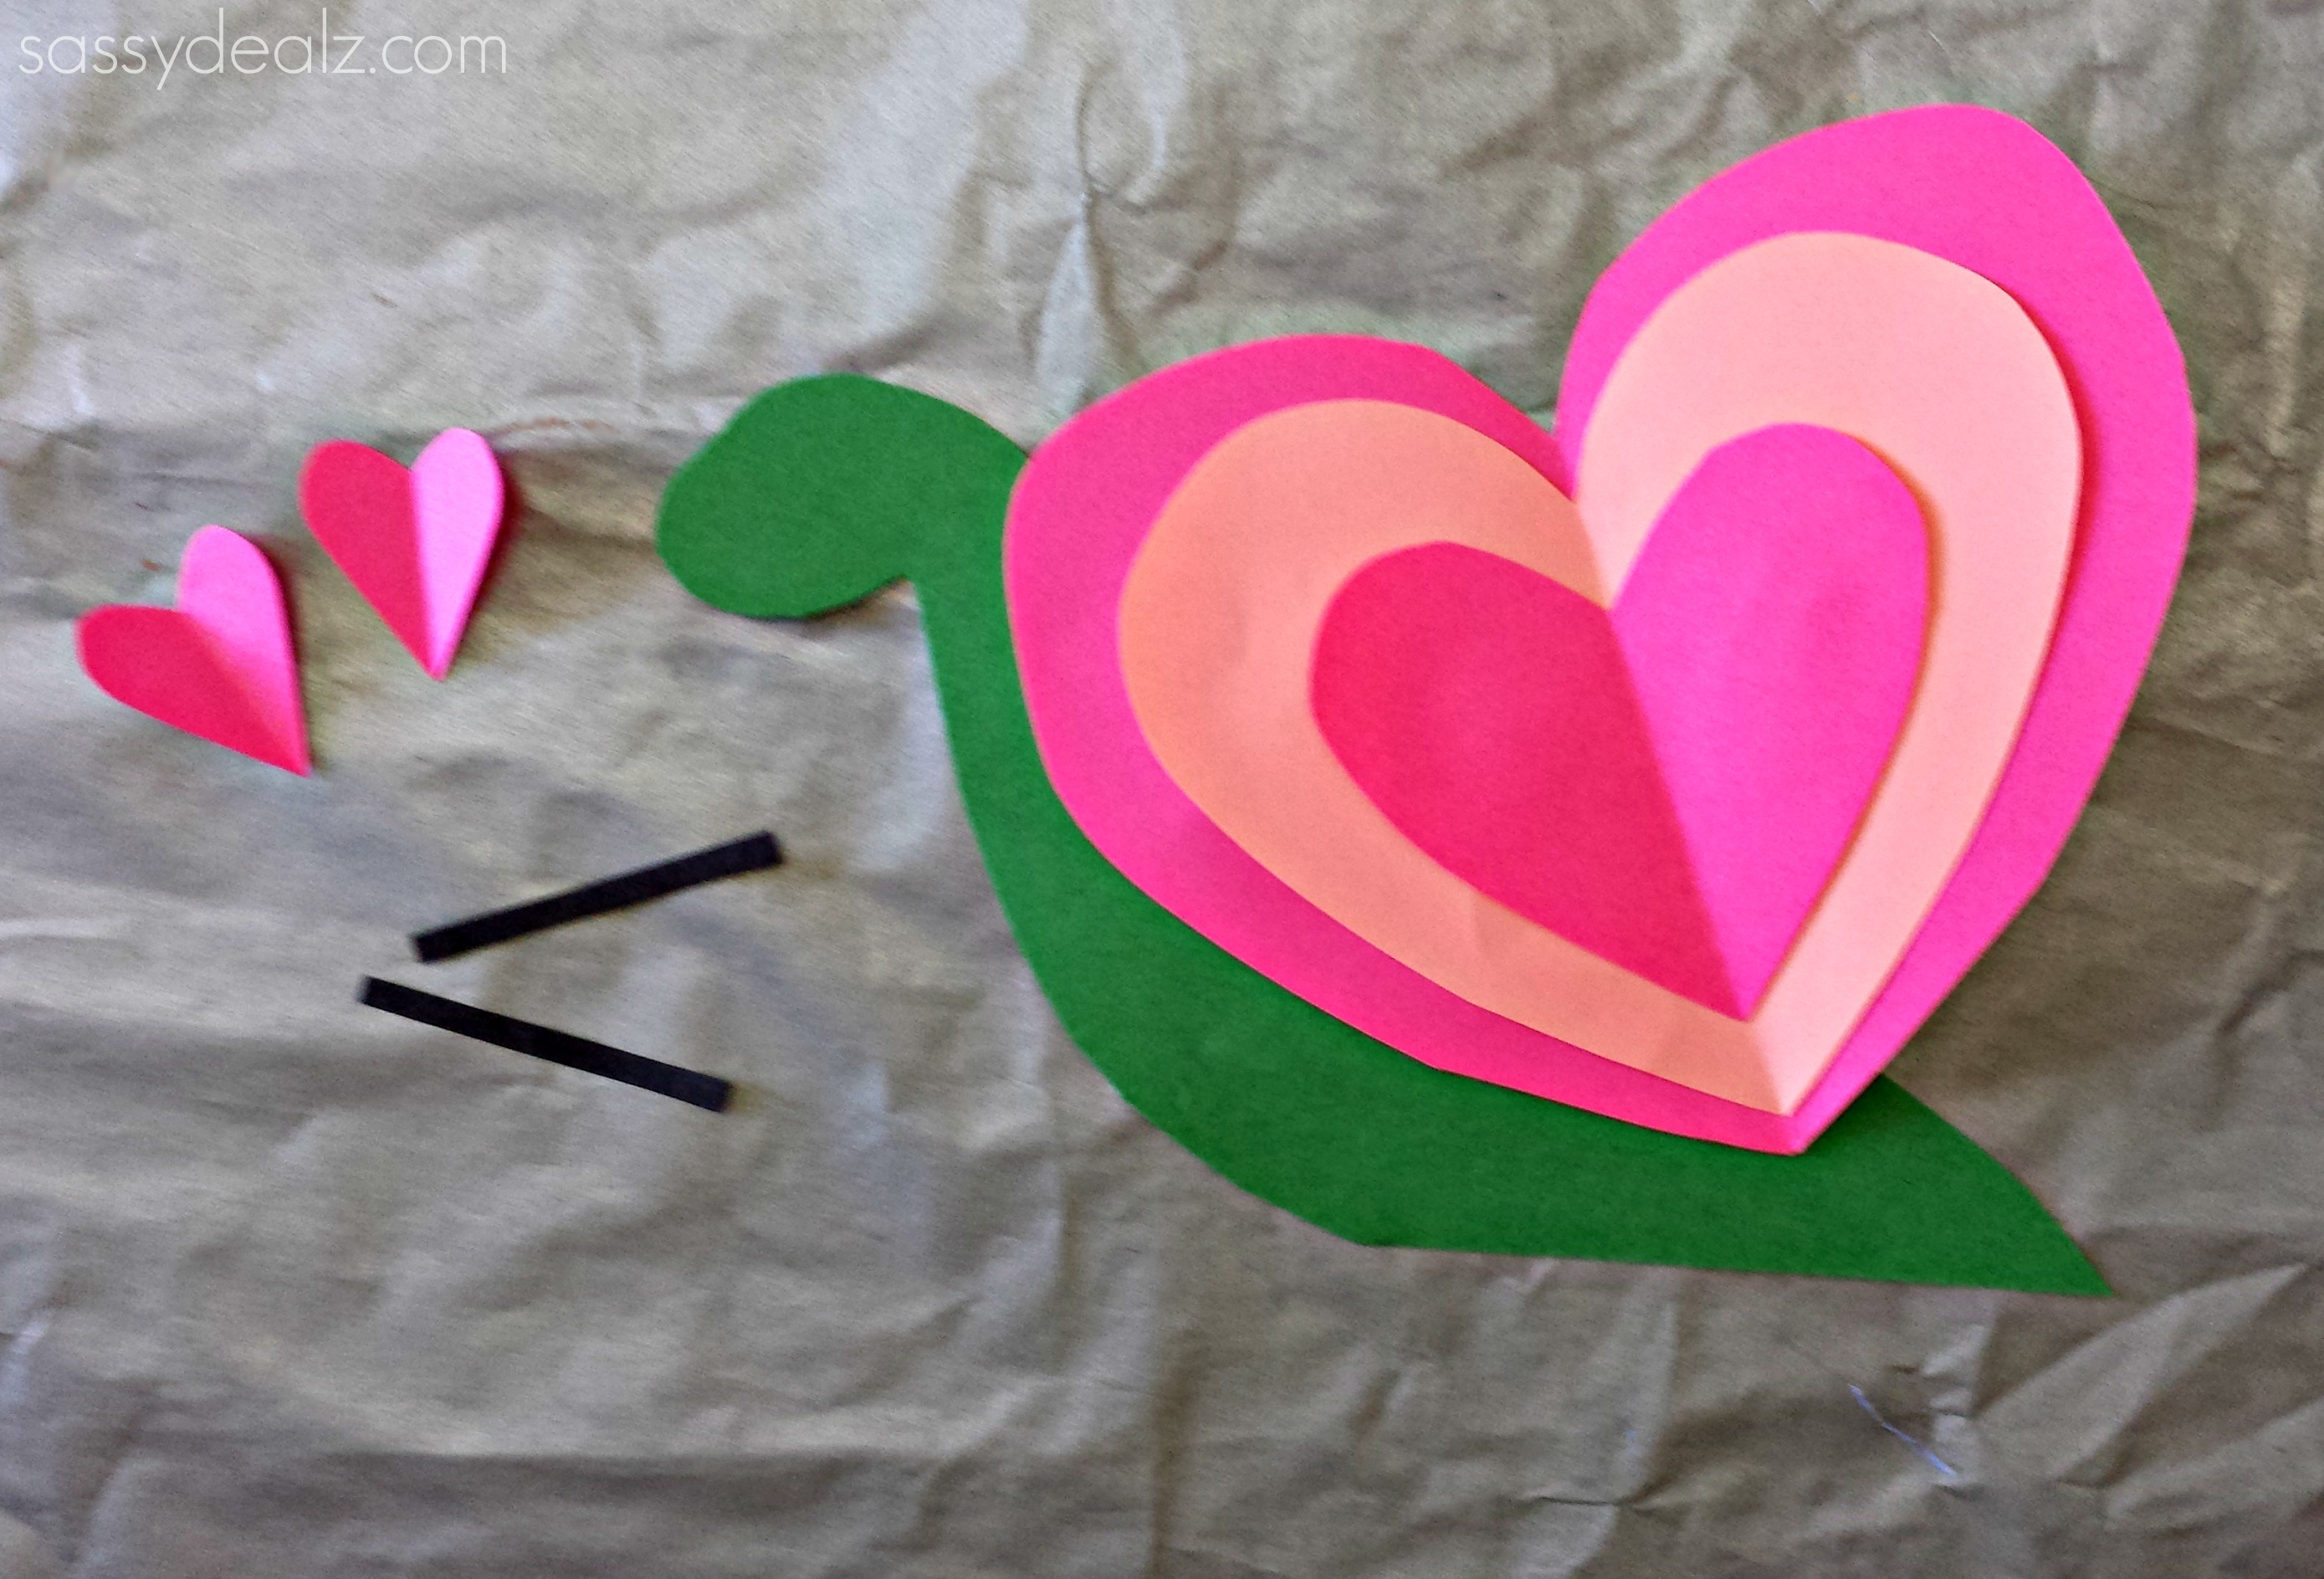 Ideas For Arts And Crafts For Kids Part - 21: Valentine Heart Snail Craft